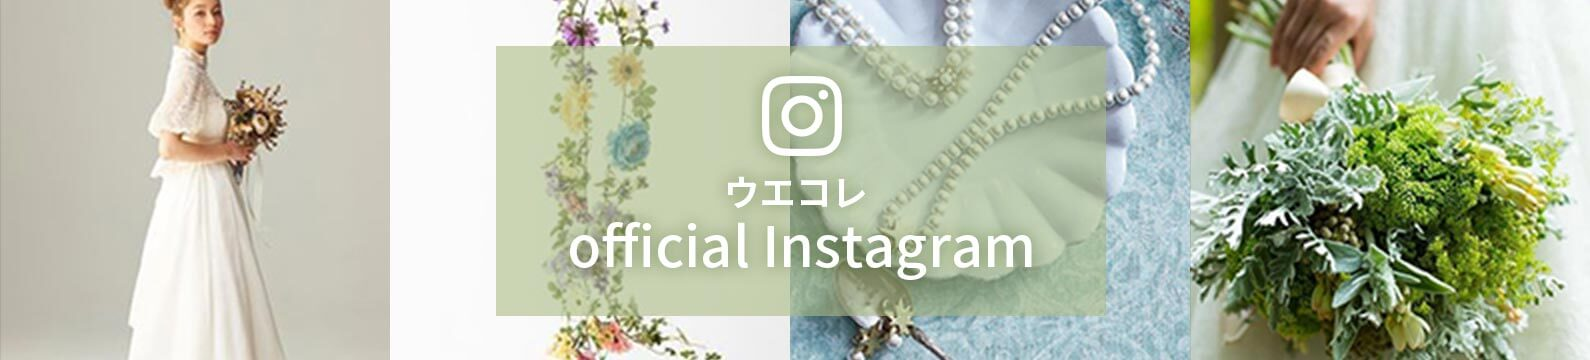 ウエコレ official Instagram